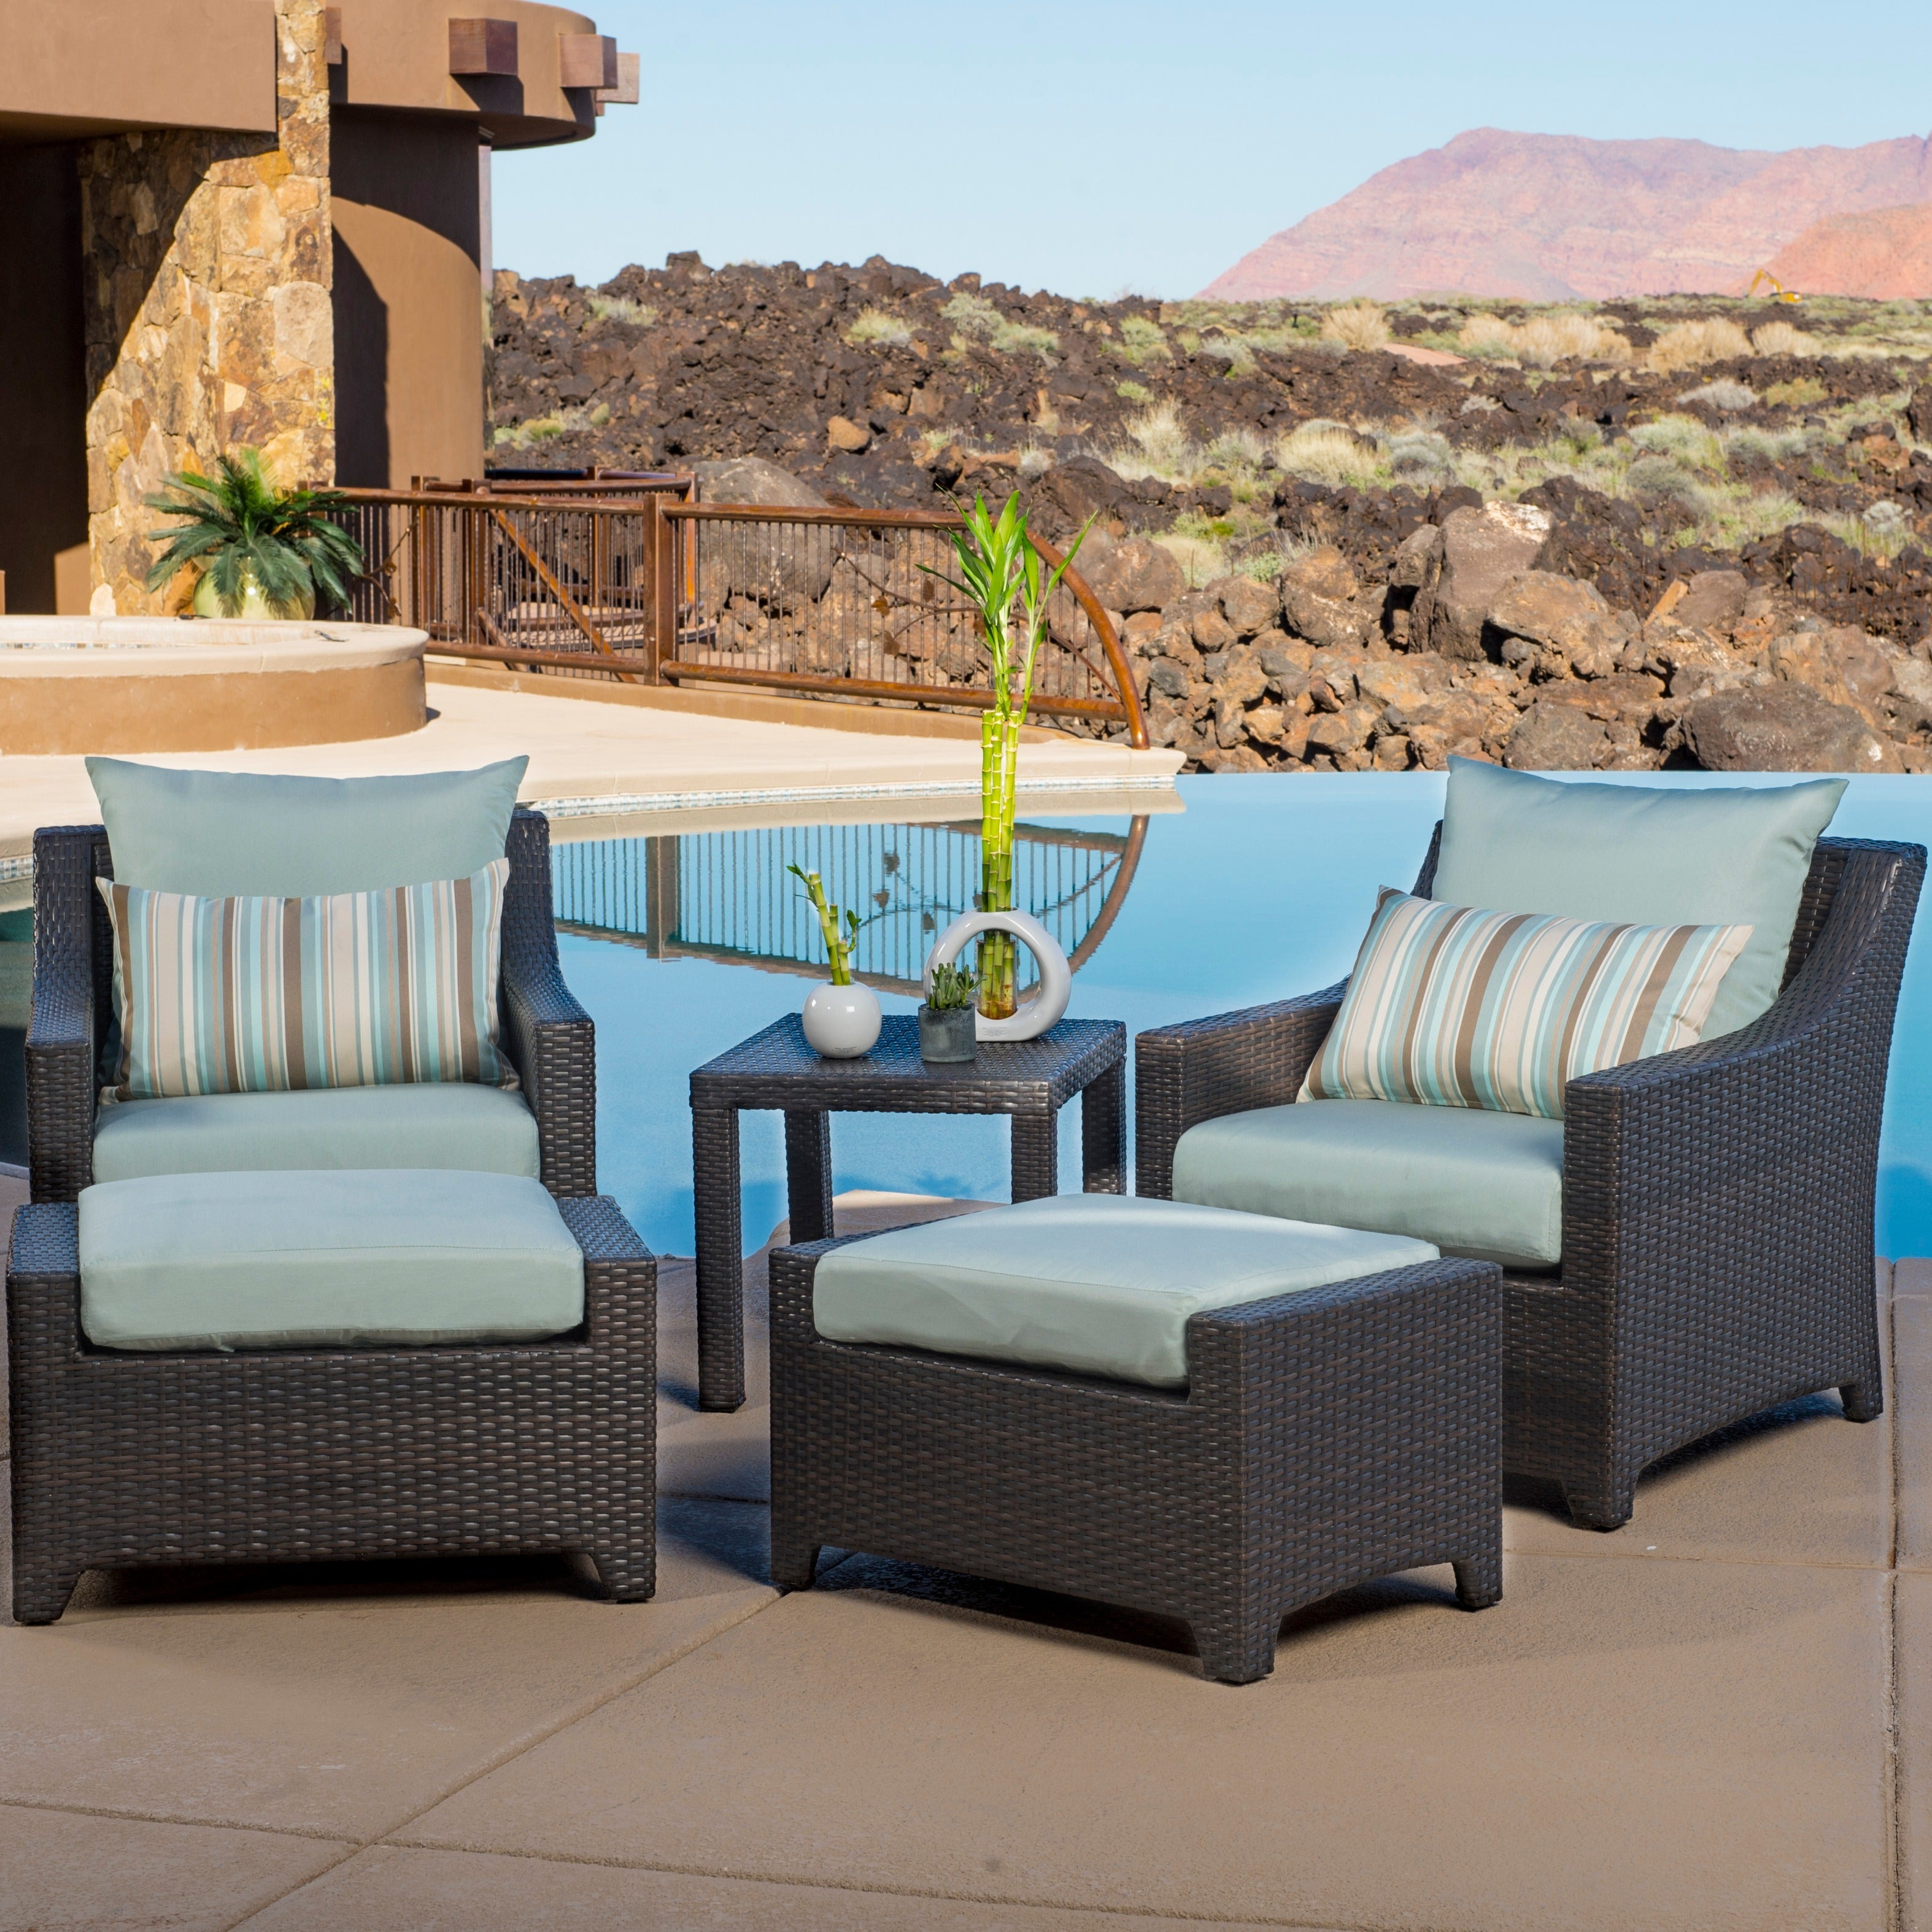 RST Brands Bliss 5 piece Club Chairs and Ottomans Patio Set Free